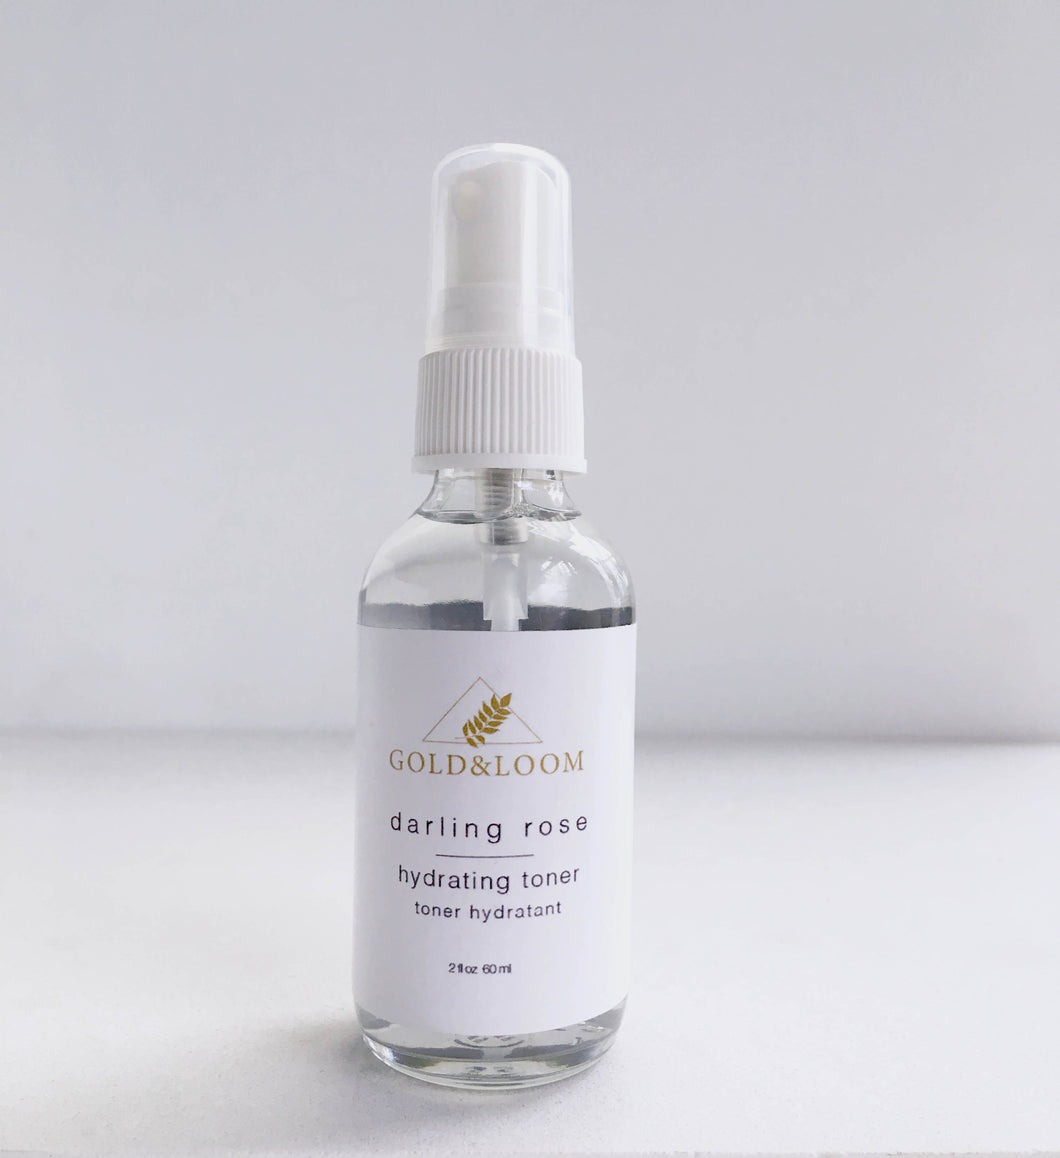 Darling Rose Toner by Gold&Loom